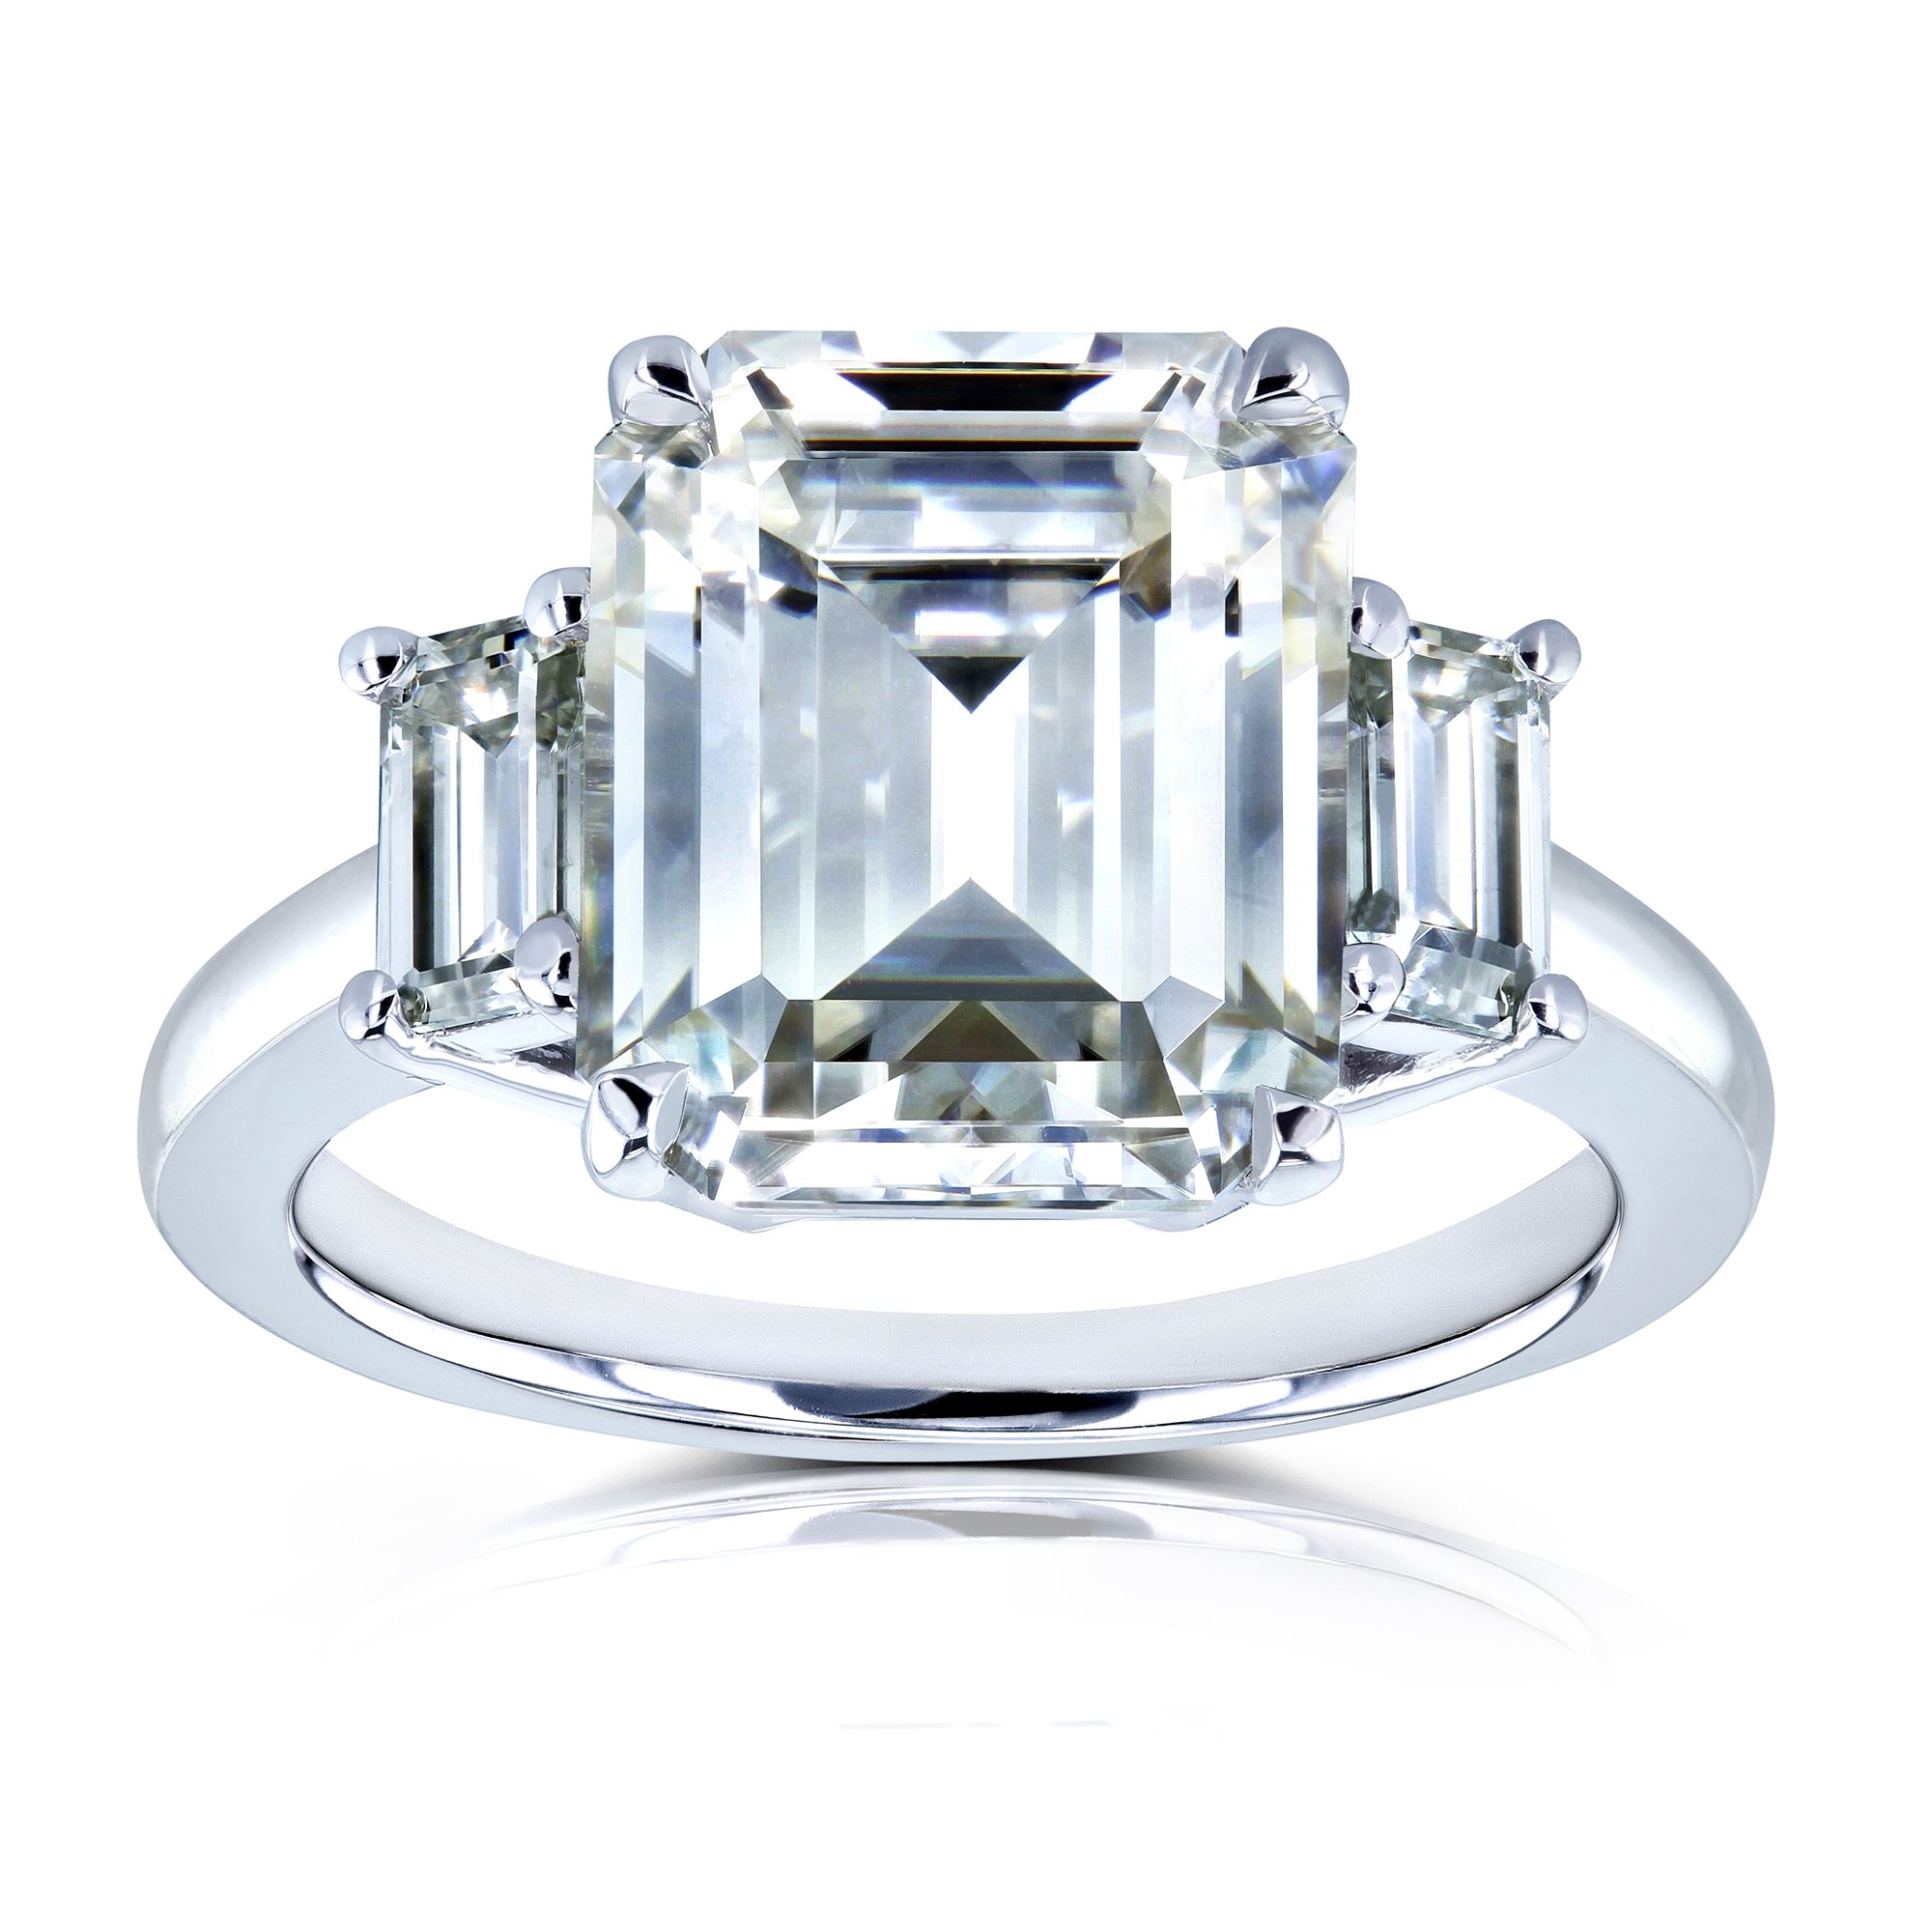 5 1/2 Carat TGW Three Stone Emerald Cut Moissanite Statement Engagement Ring in 14k White Gold - Size 7